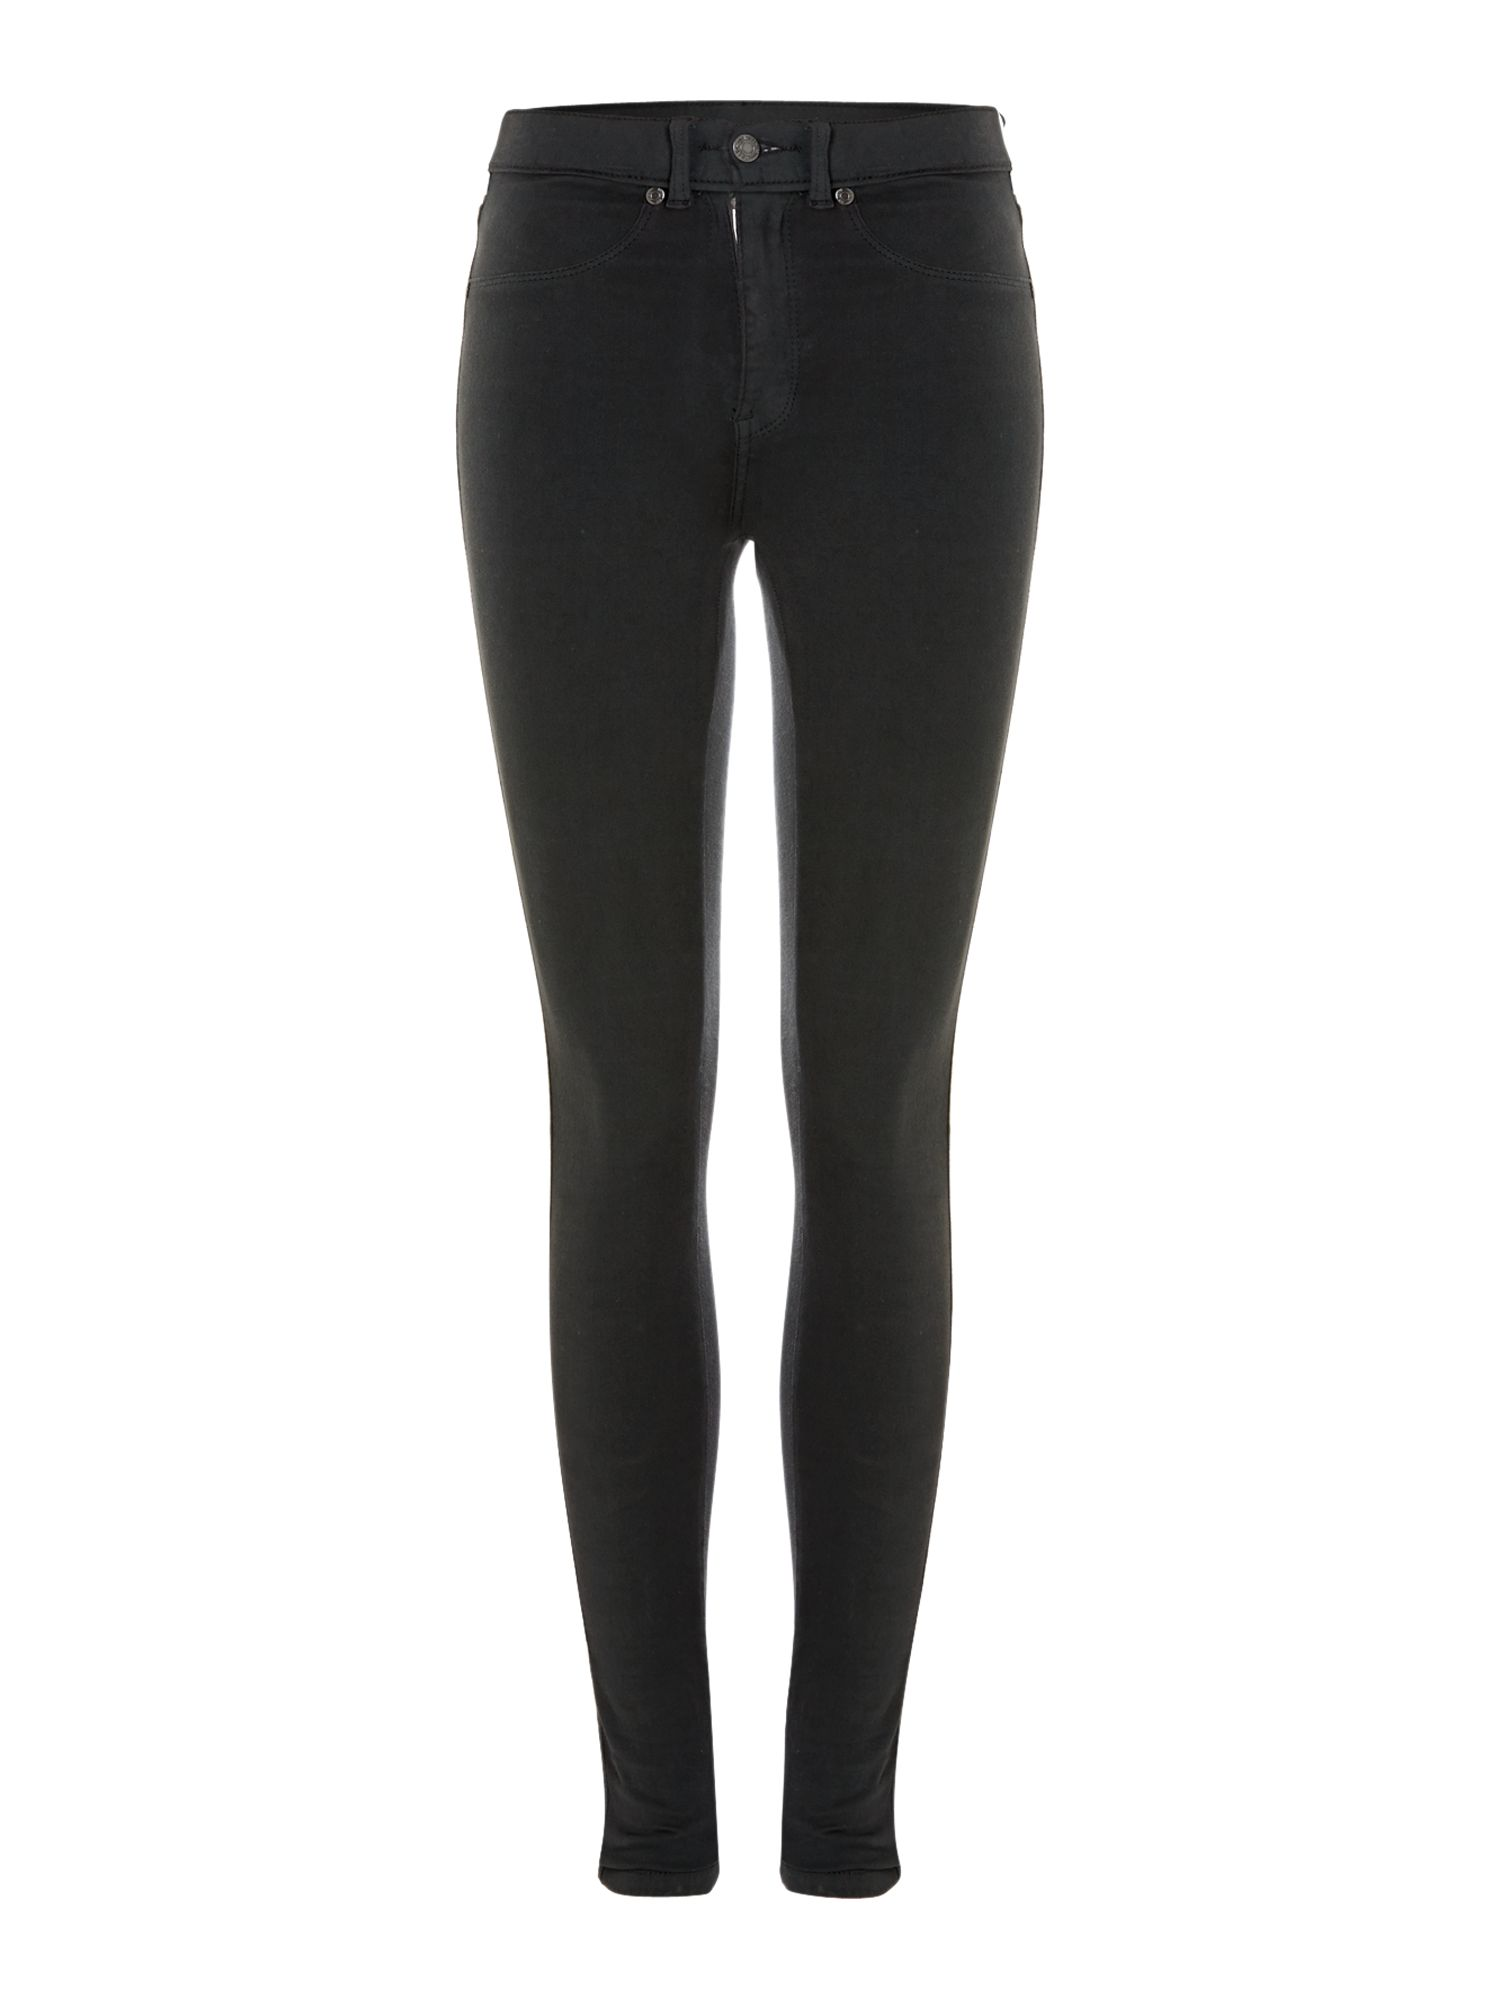 Plenty high-rise skinny jeans